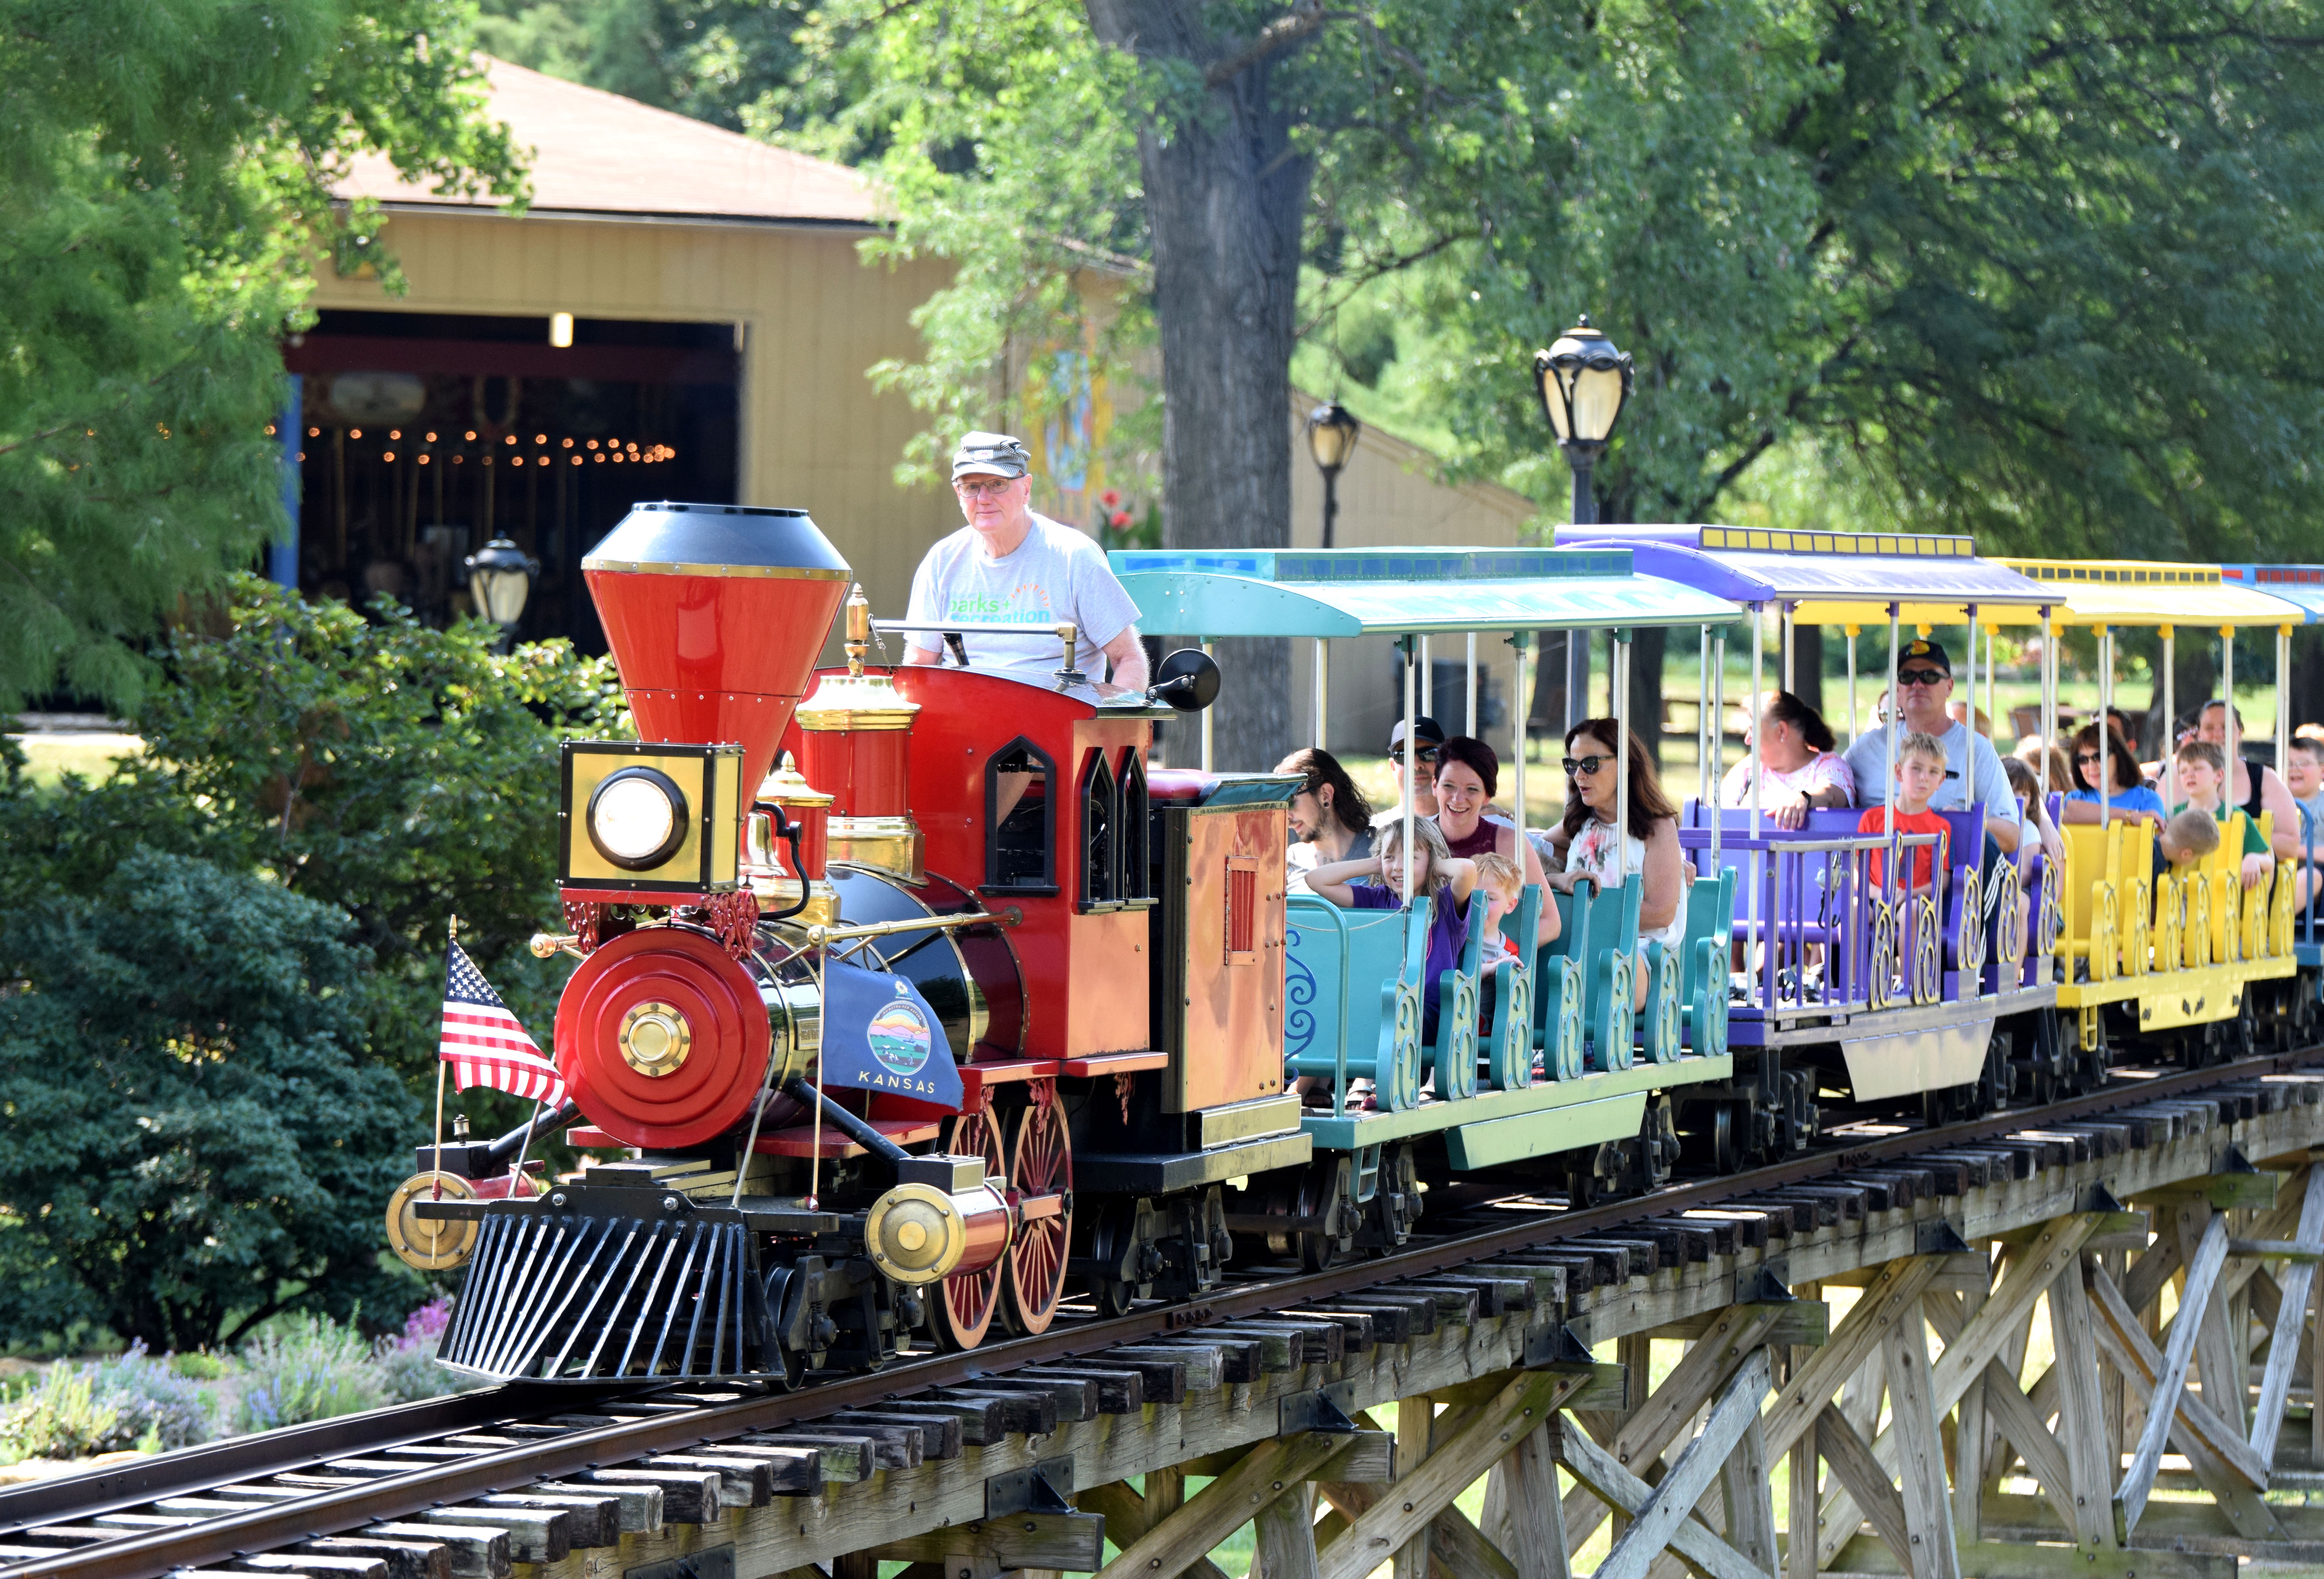 Mini-train on trestle in front of carousel